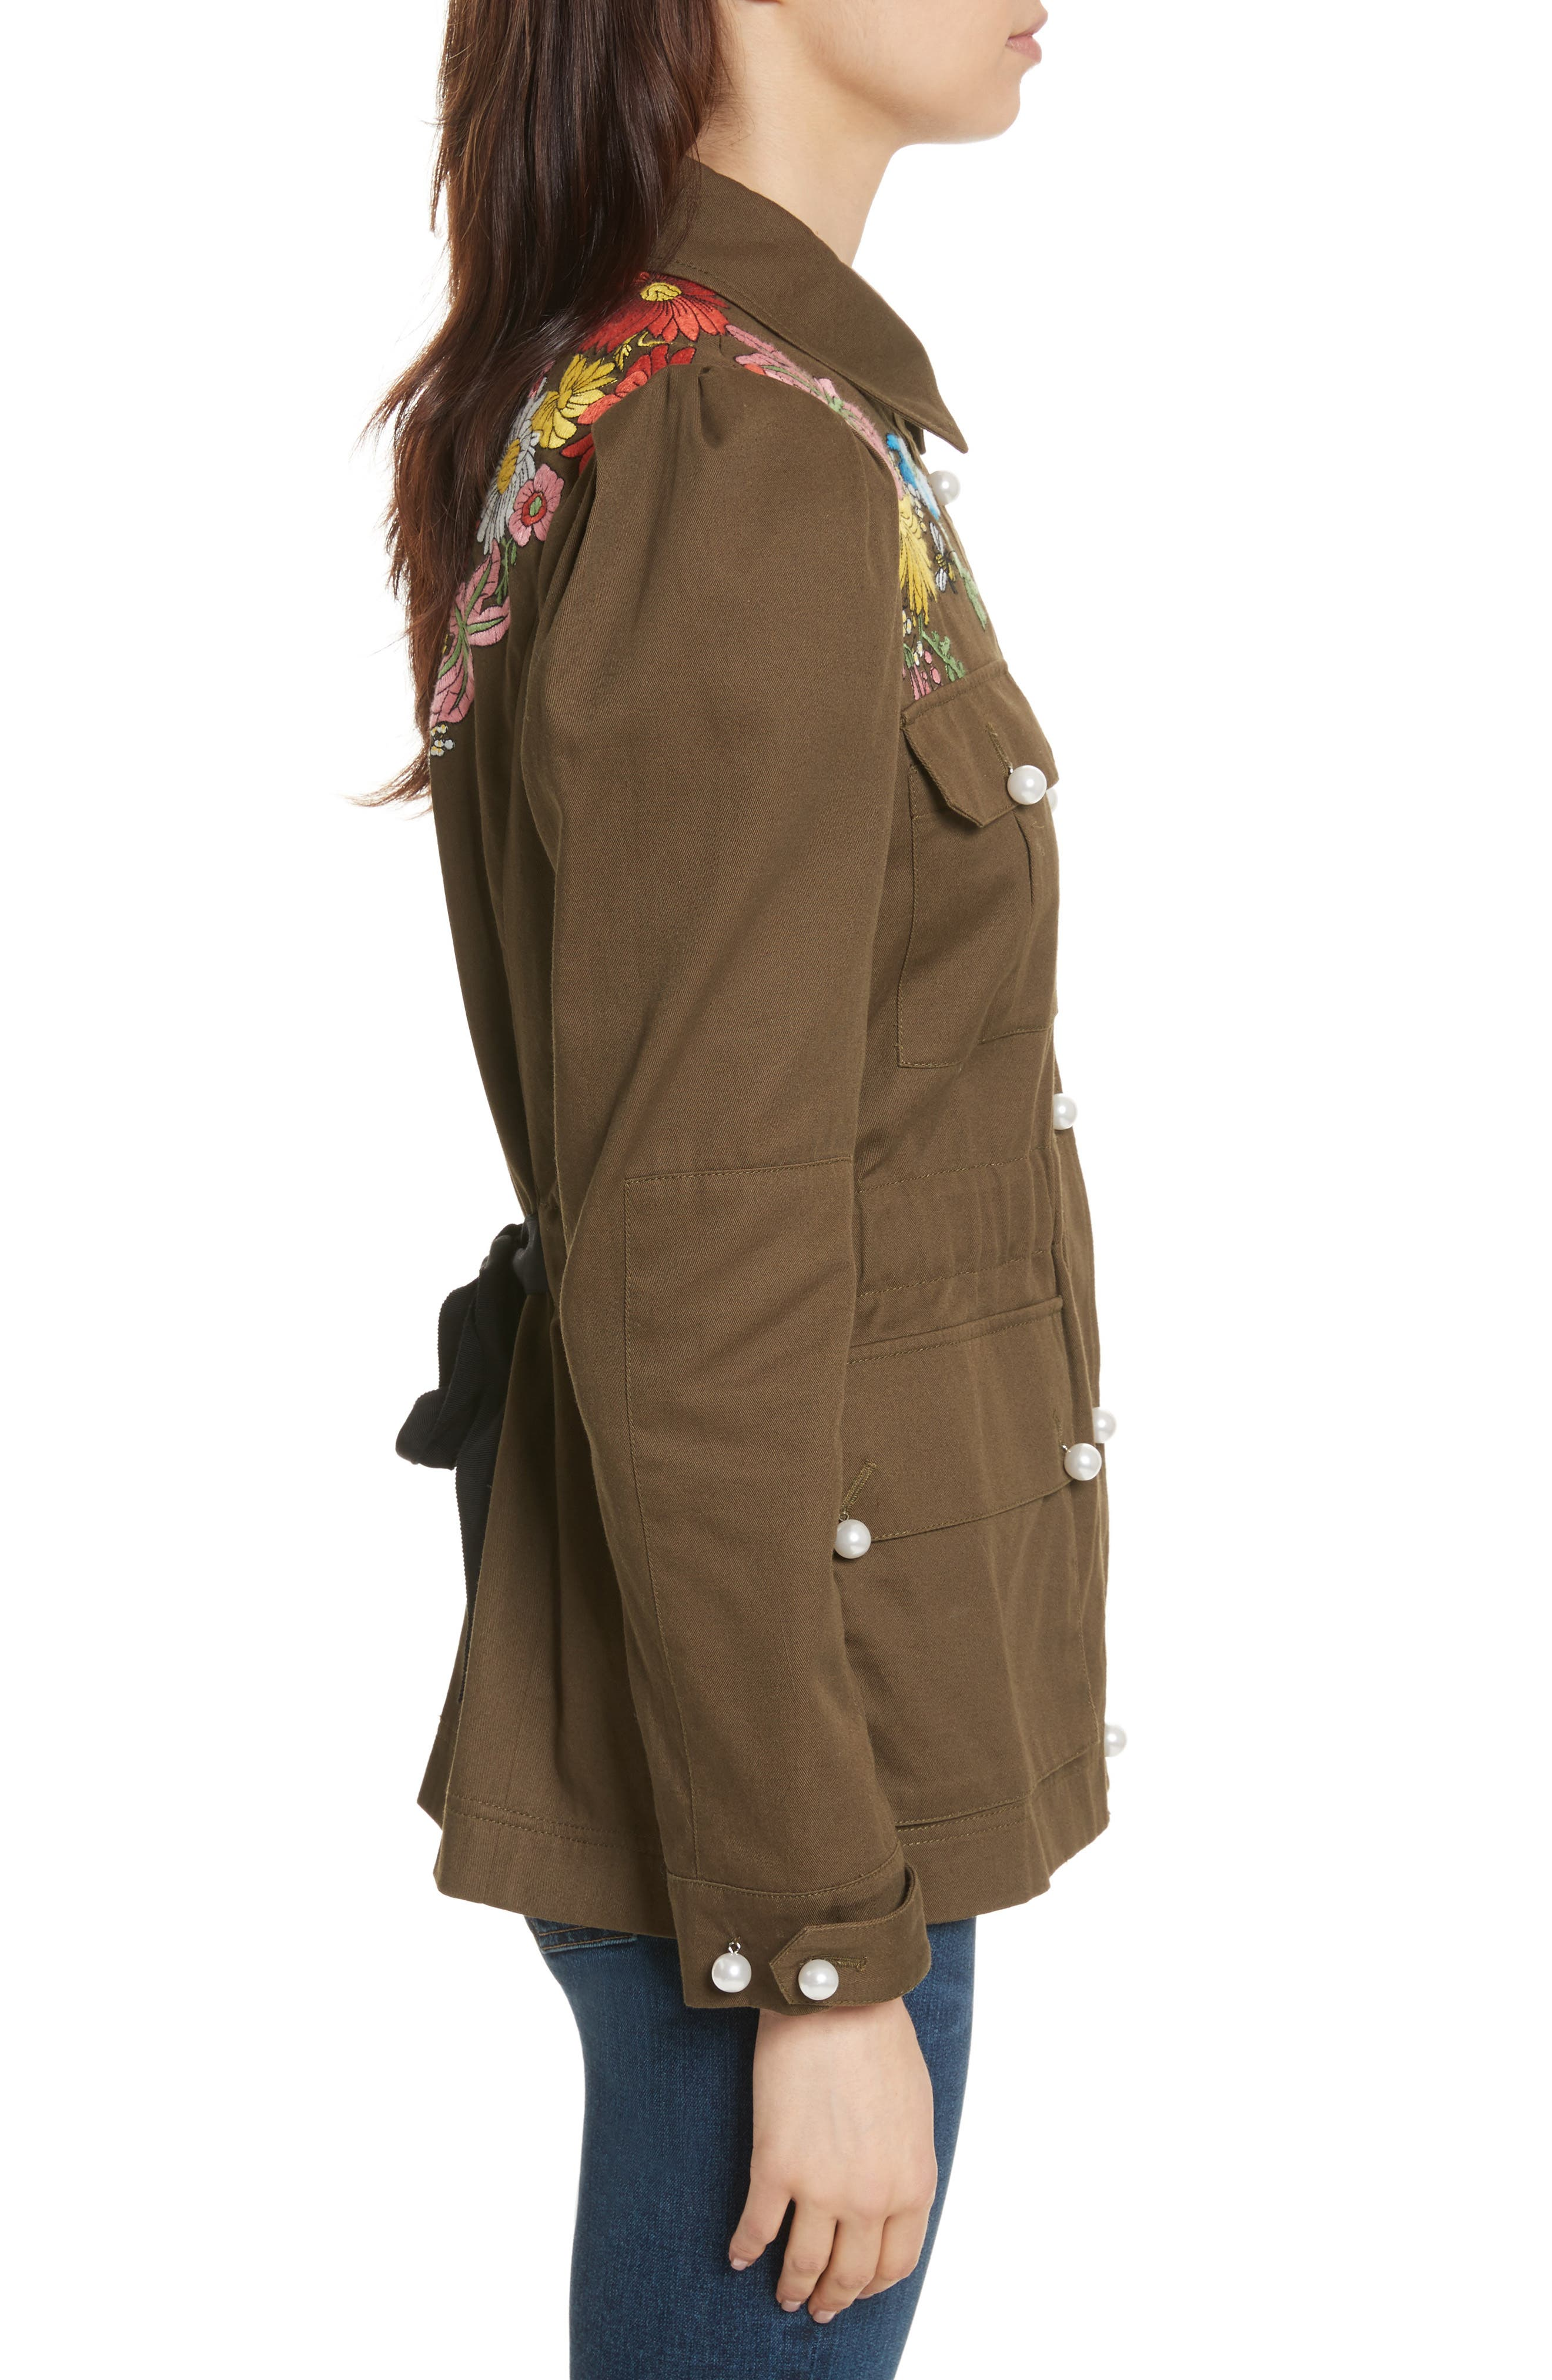 Huxley Floral Embroidered Safari Jacket,                             Alternate thumbnail 3, color,                             Army